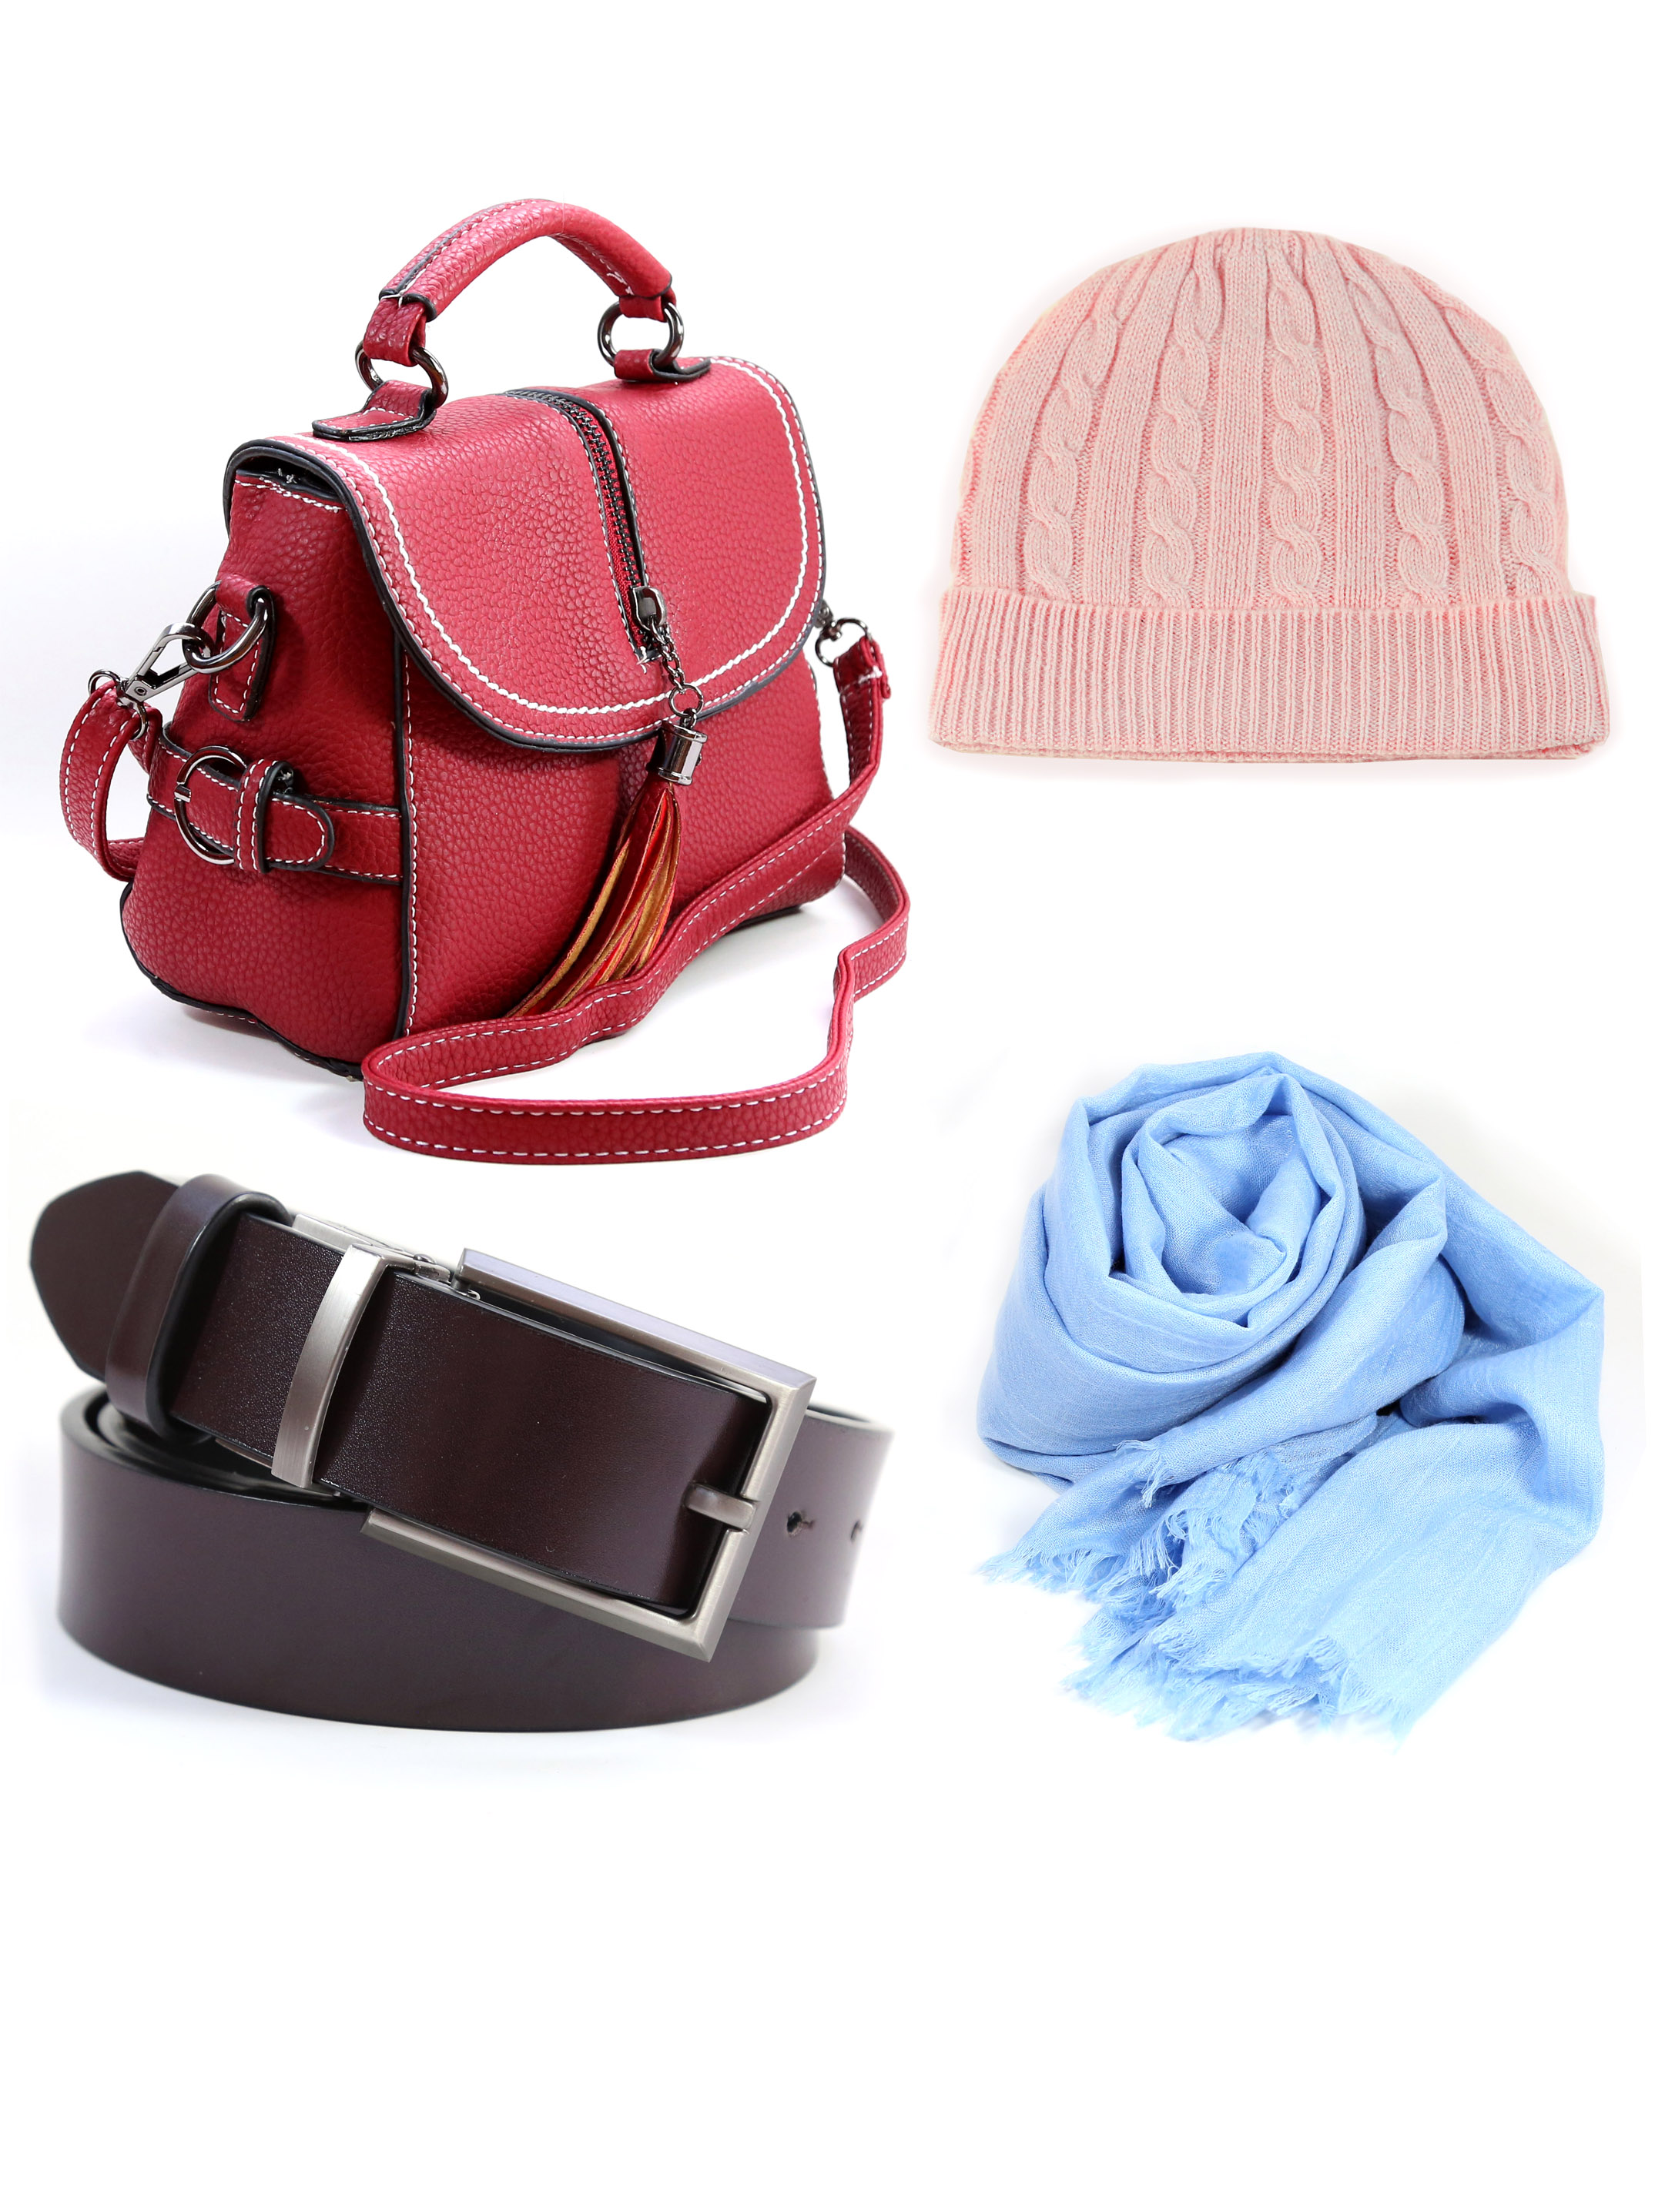 Accessories - With every good jacket you need a good accessories.Cashmere and Bamboo Scarfs, leather belts and handbags.